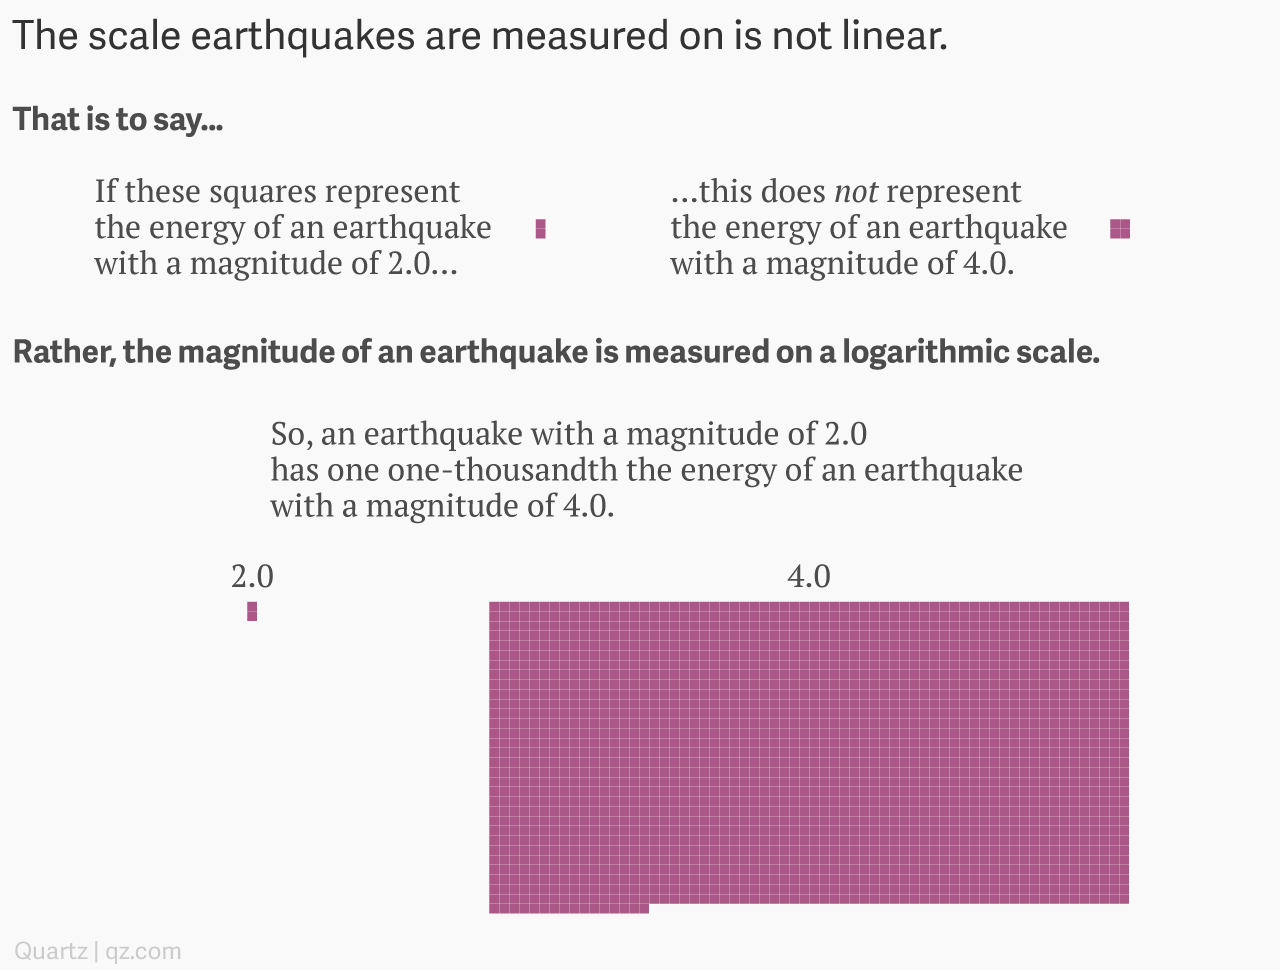 Is The Scale Earthquakes Are Measured On Logarithmic Quartz